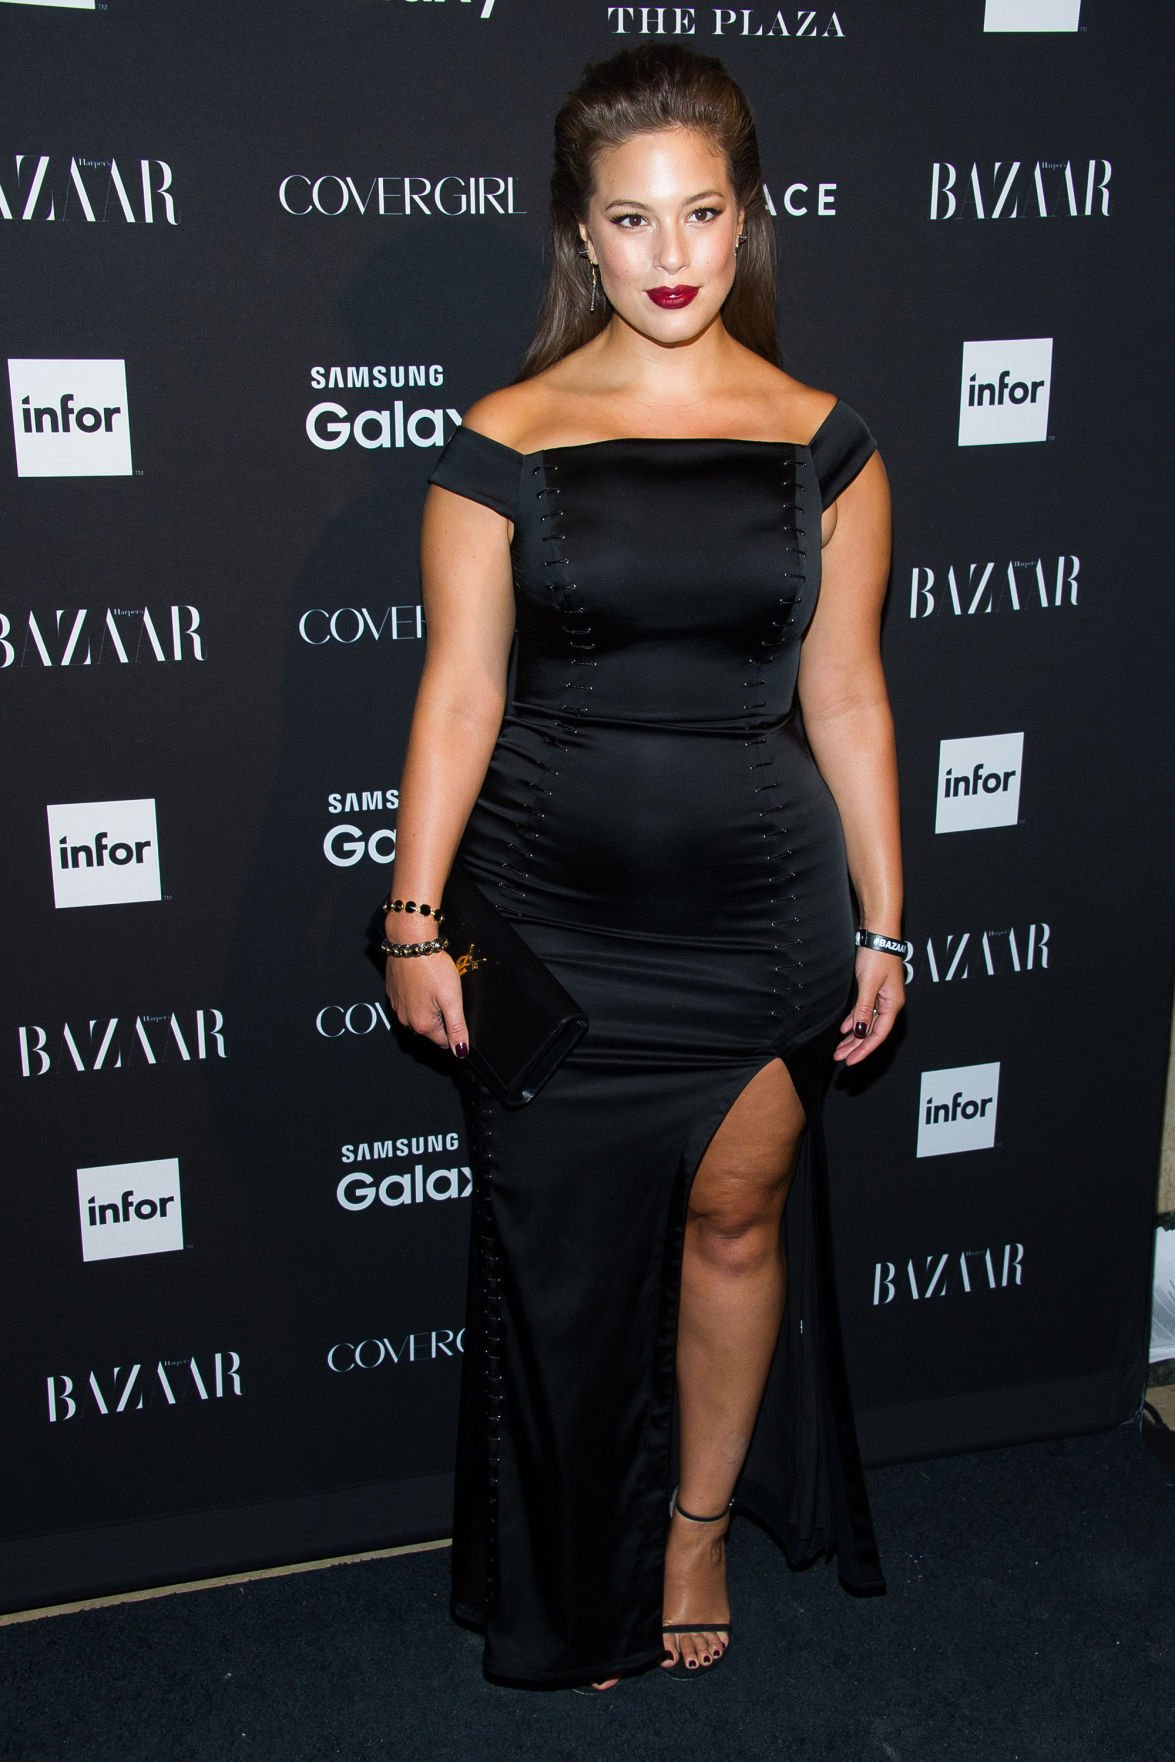 df9c7b435b S.I. model Ashley Graham thrilled to share experience in hometown | Book  Reviews and News | journalstar.com